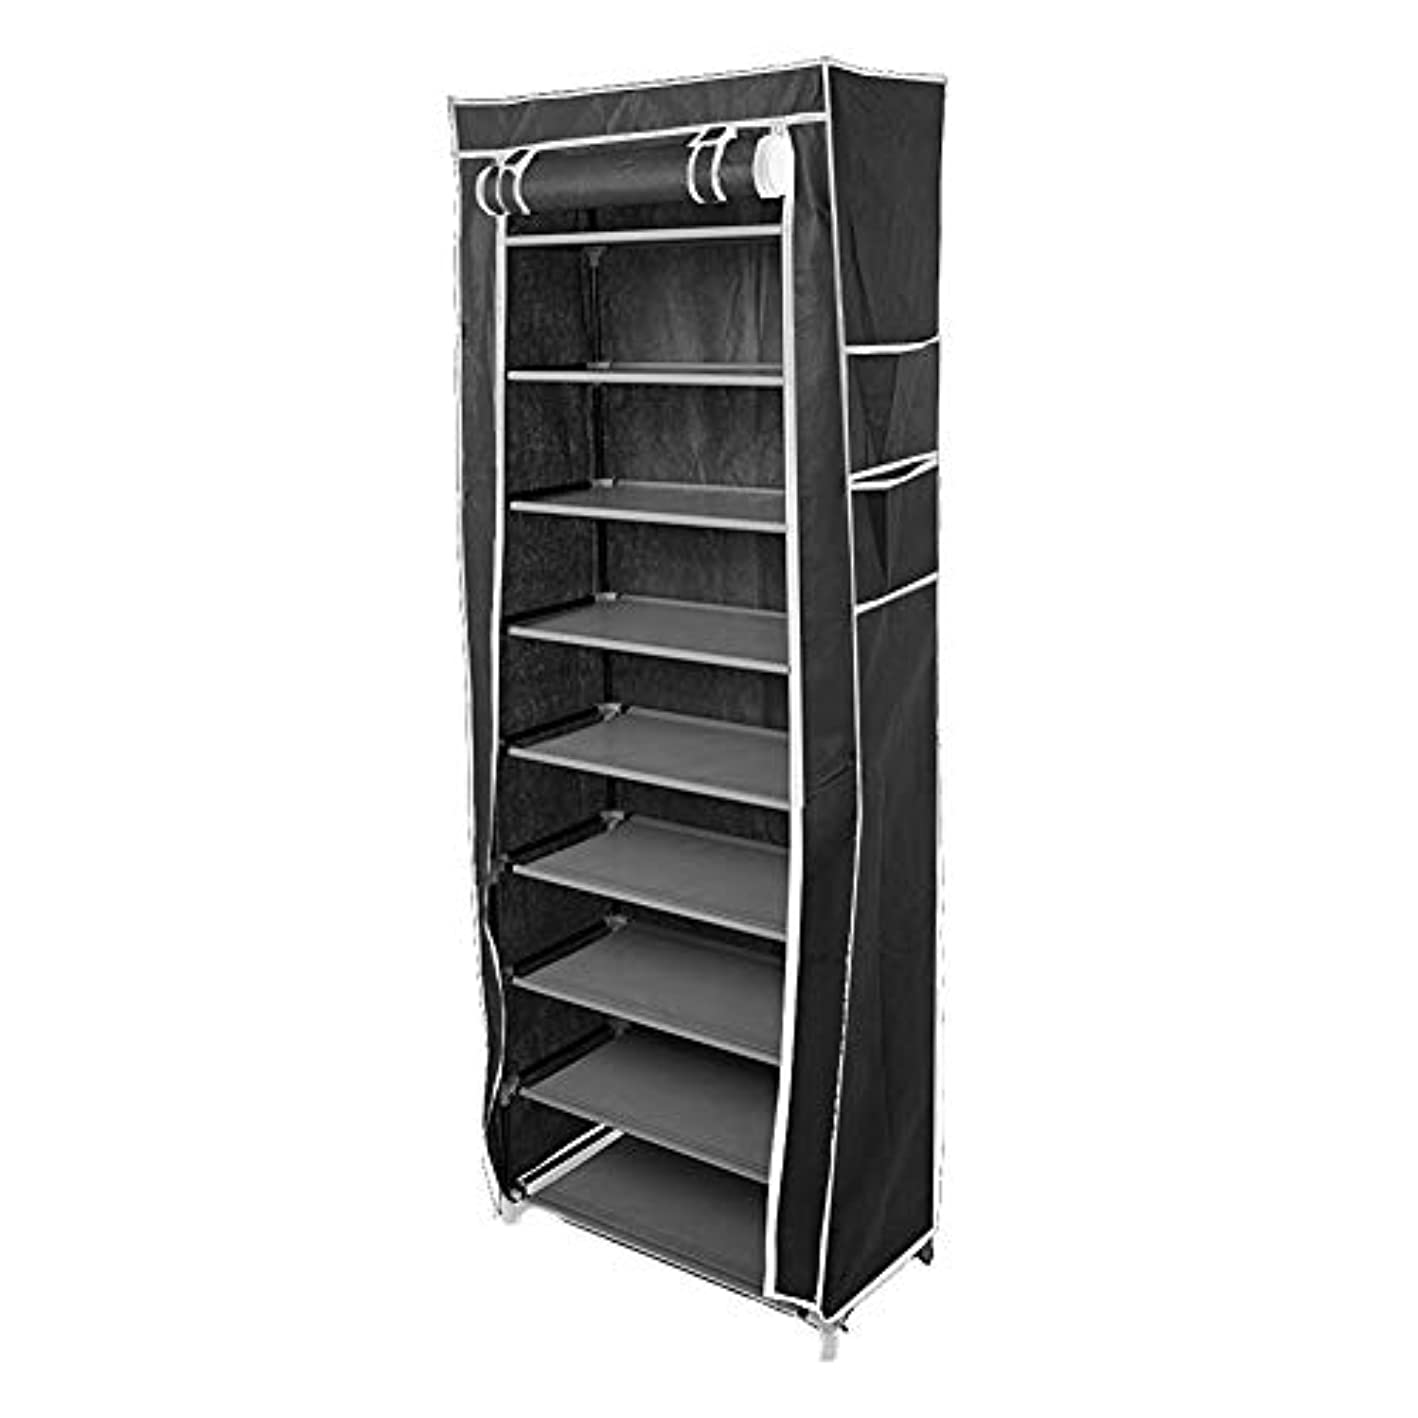 Blacgic 10 Layer 9 Grid Non-Woven Shoes Storage Rack Shoes Cabinet with Dustproof Cover Organizer Black